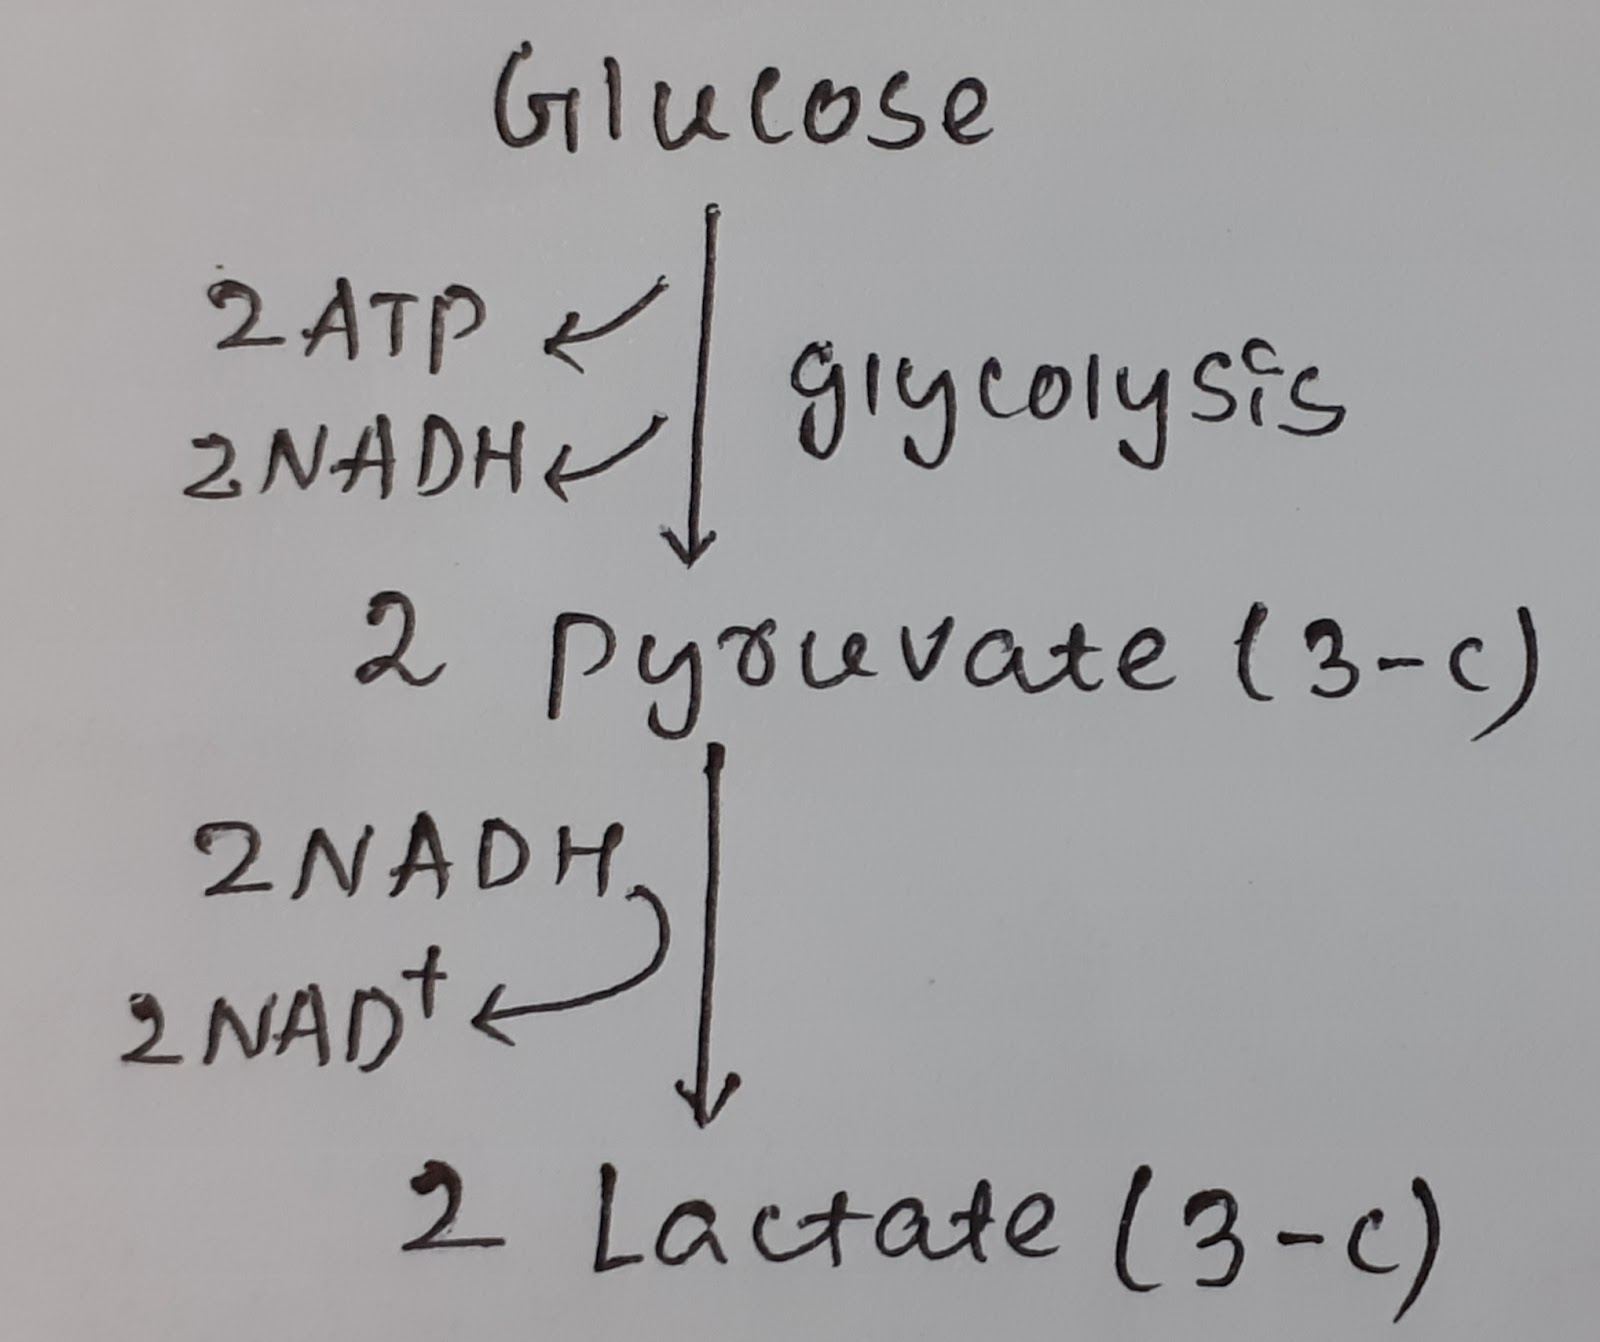 Human Body Metabolism Glycolysis Pathway